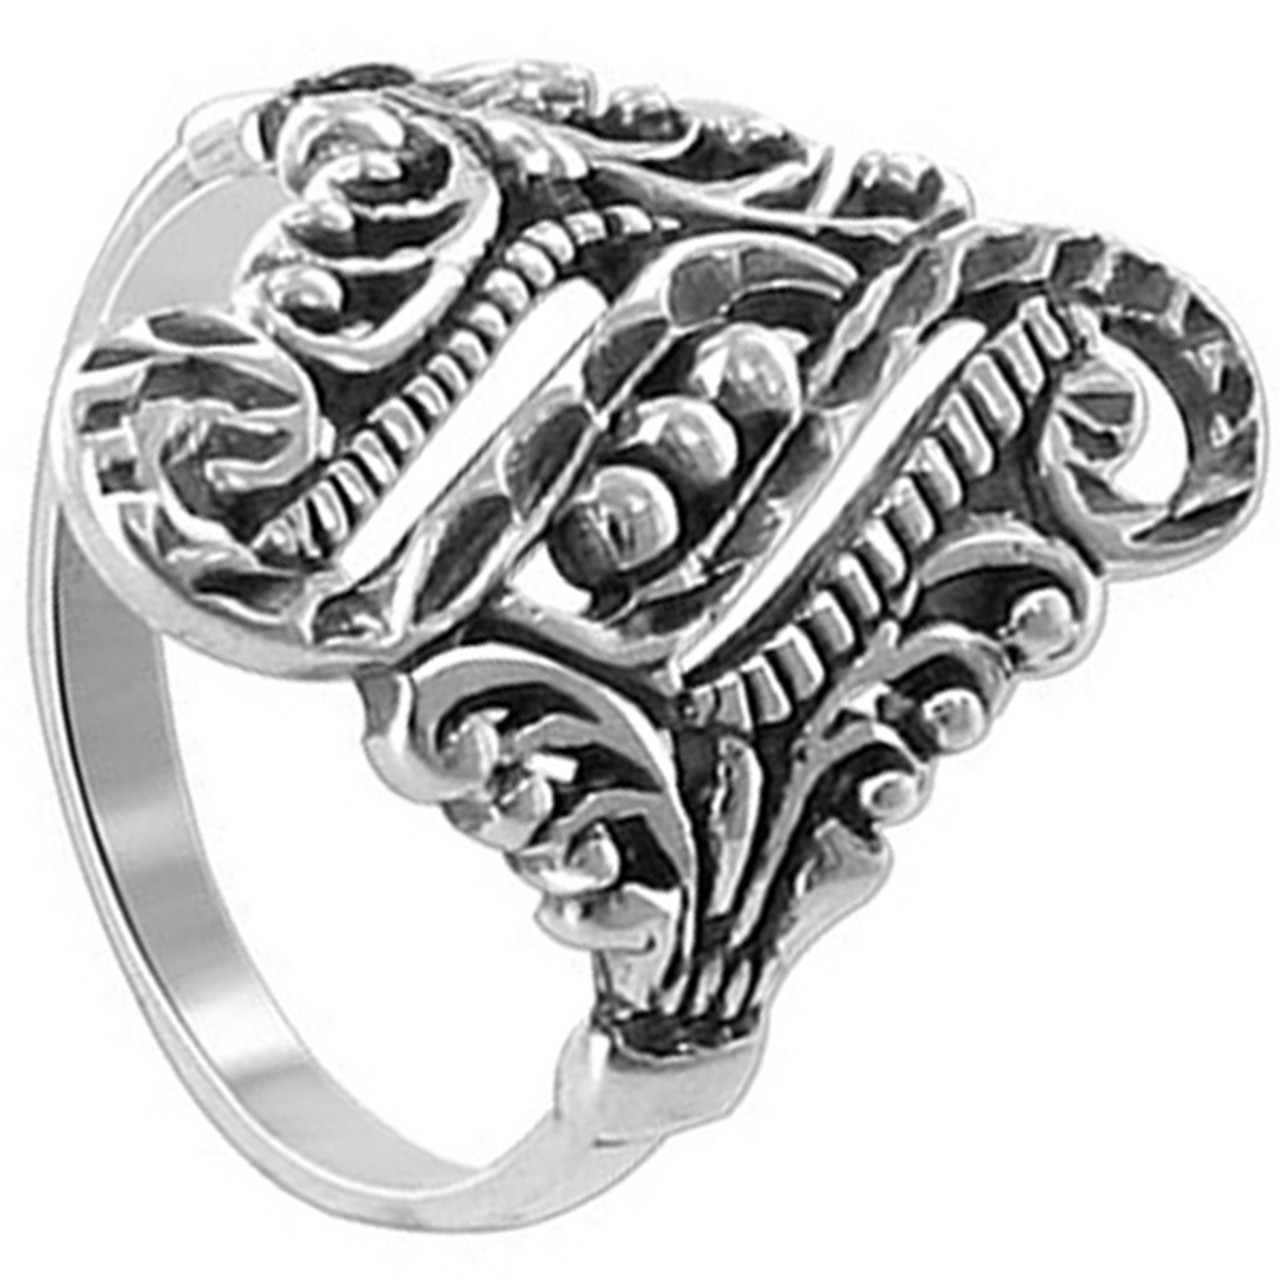 925 Sterling Silver Polished Finish 20mm Filigree Floral Design Front Ring